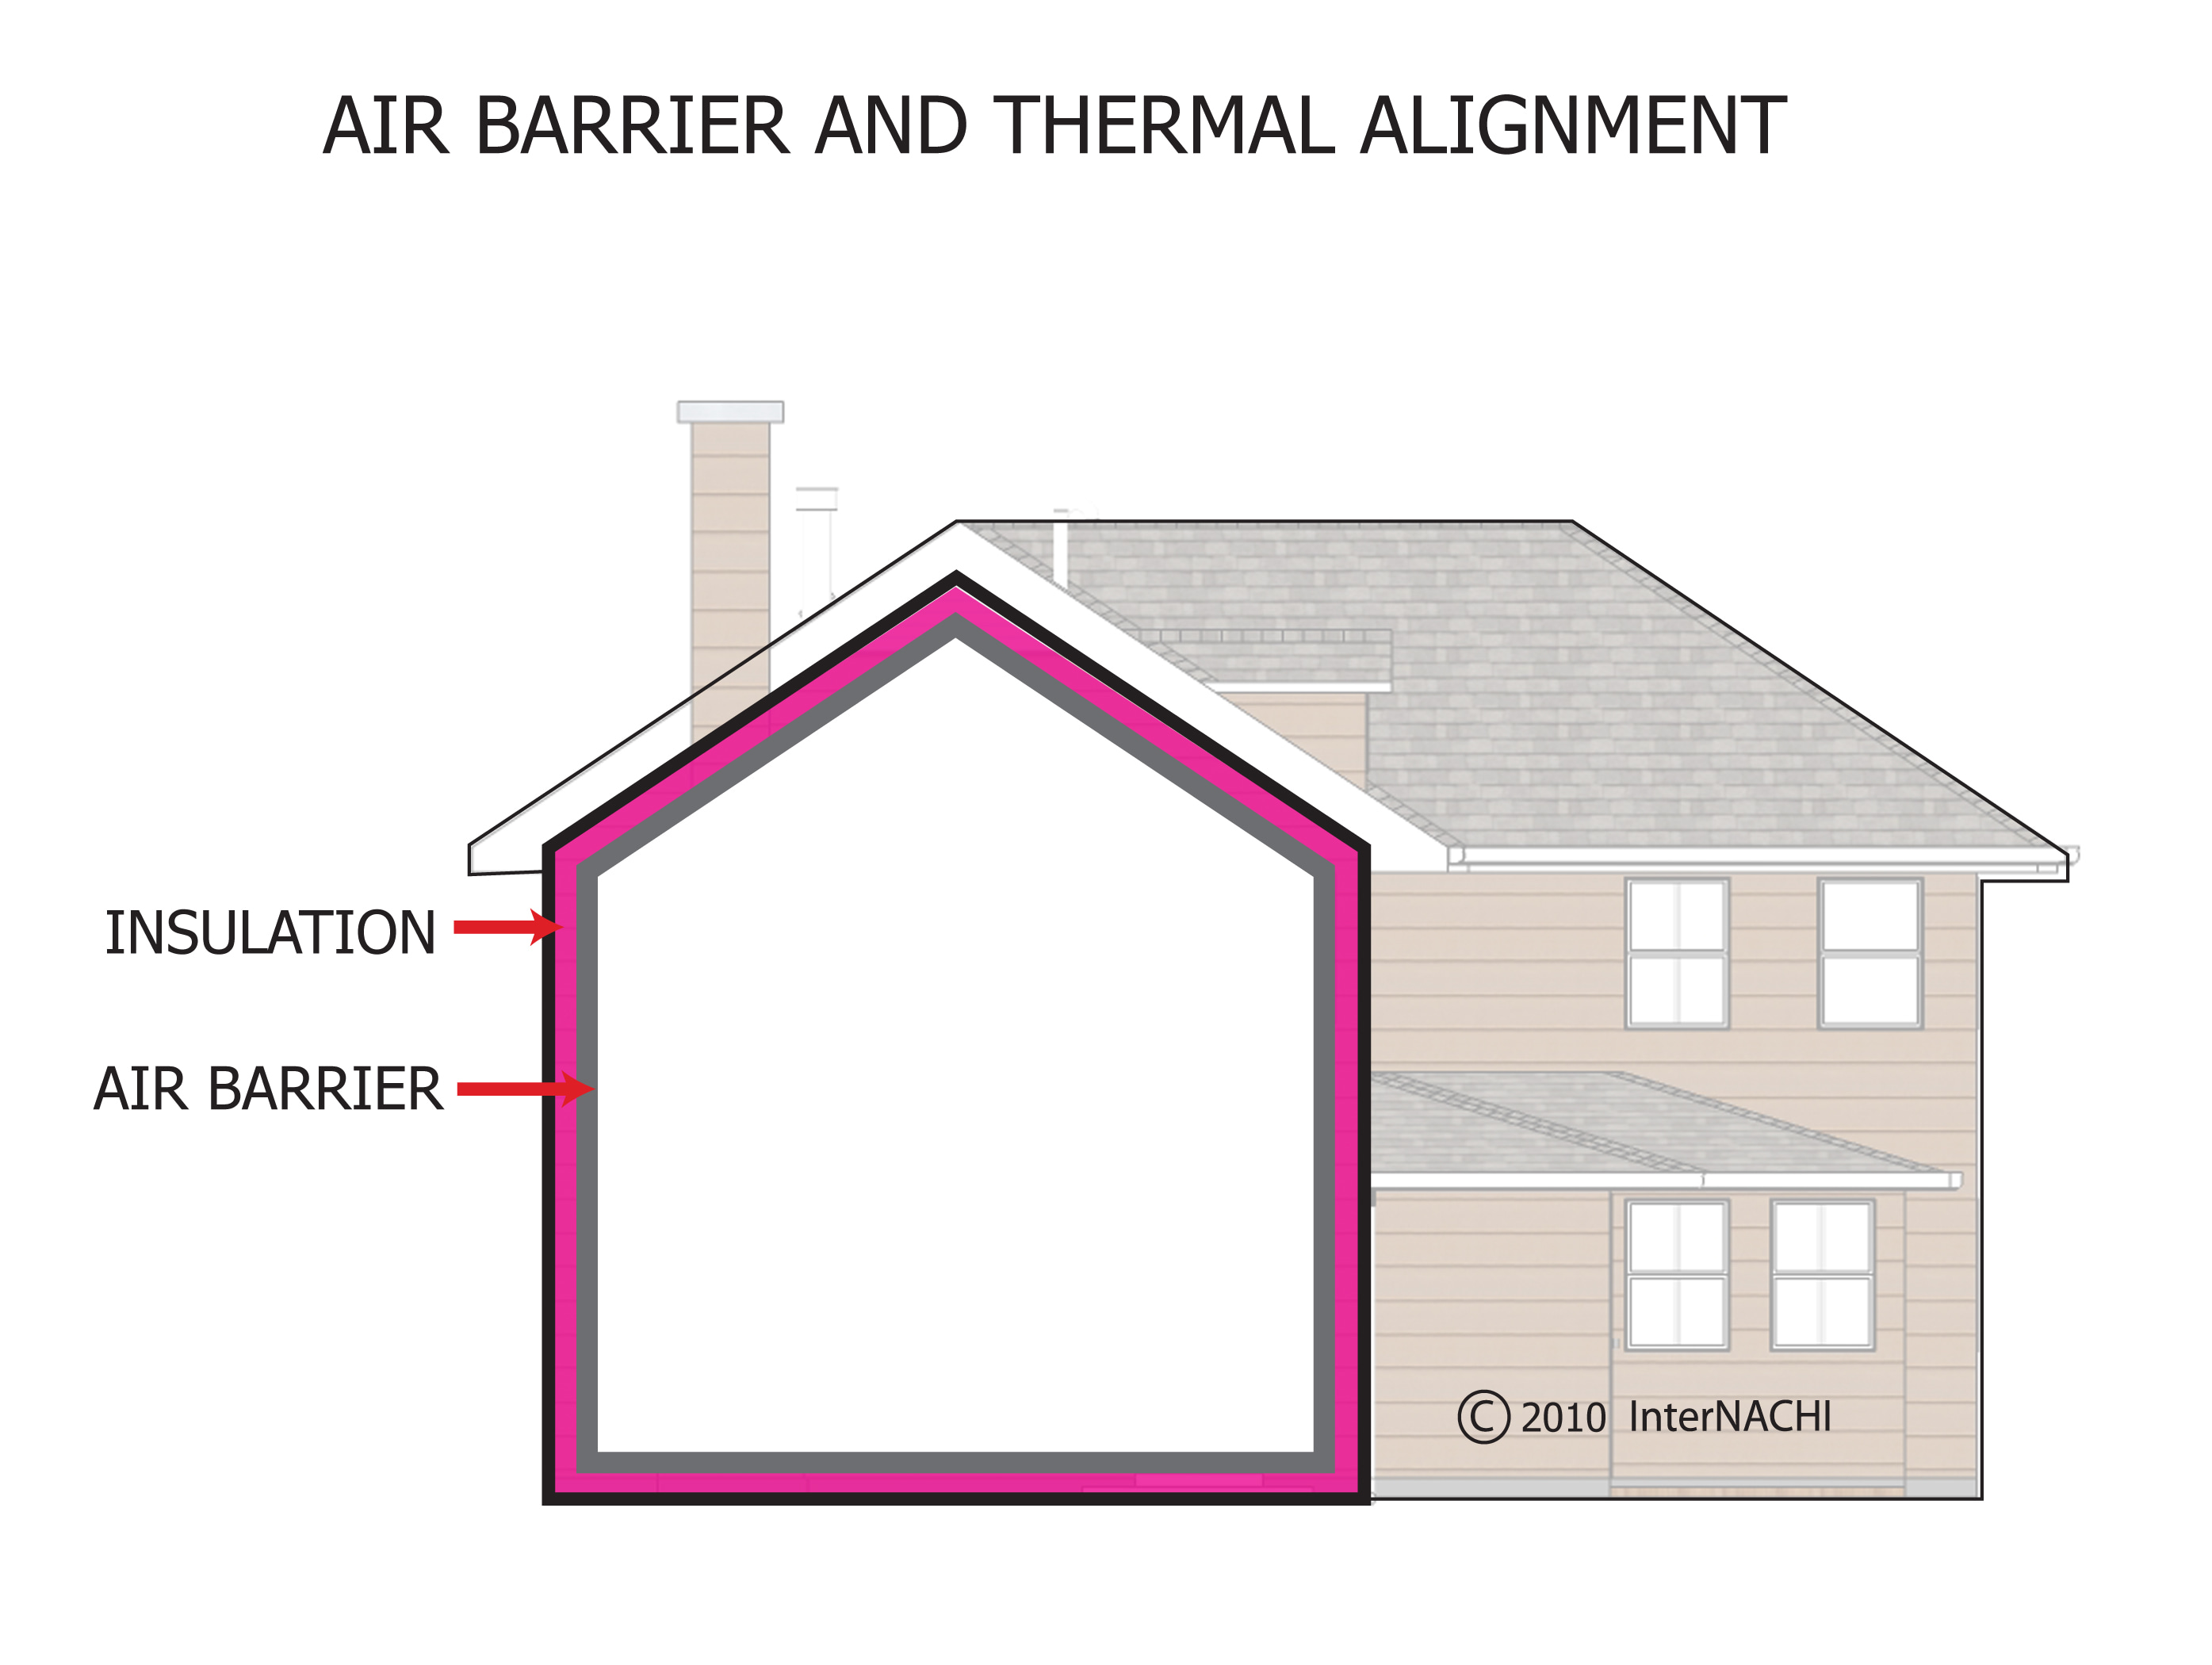 Air barrier and thermal alignment.